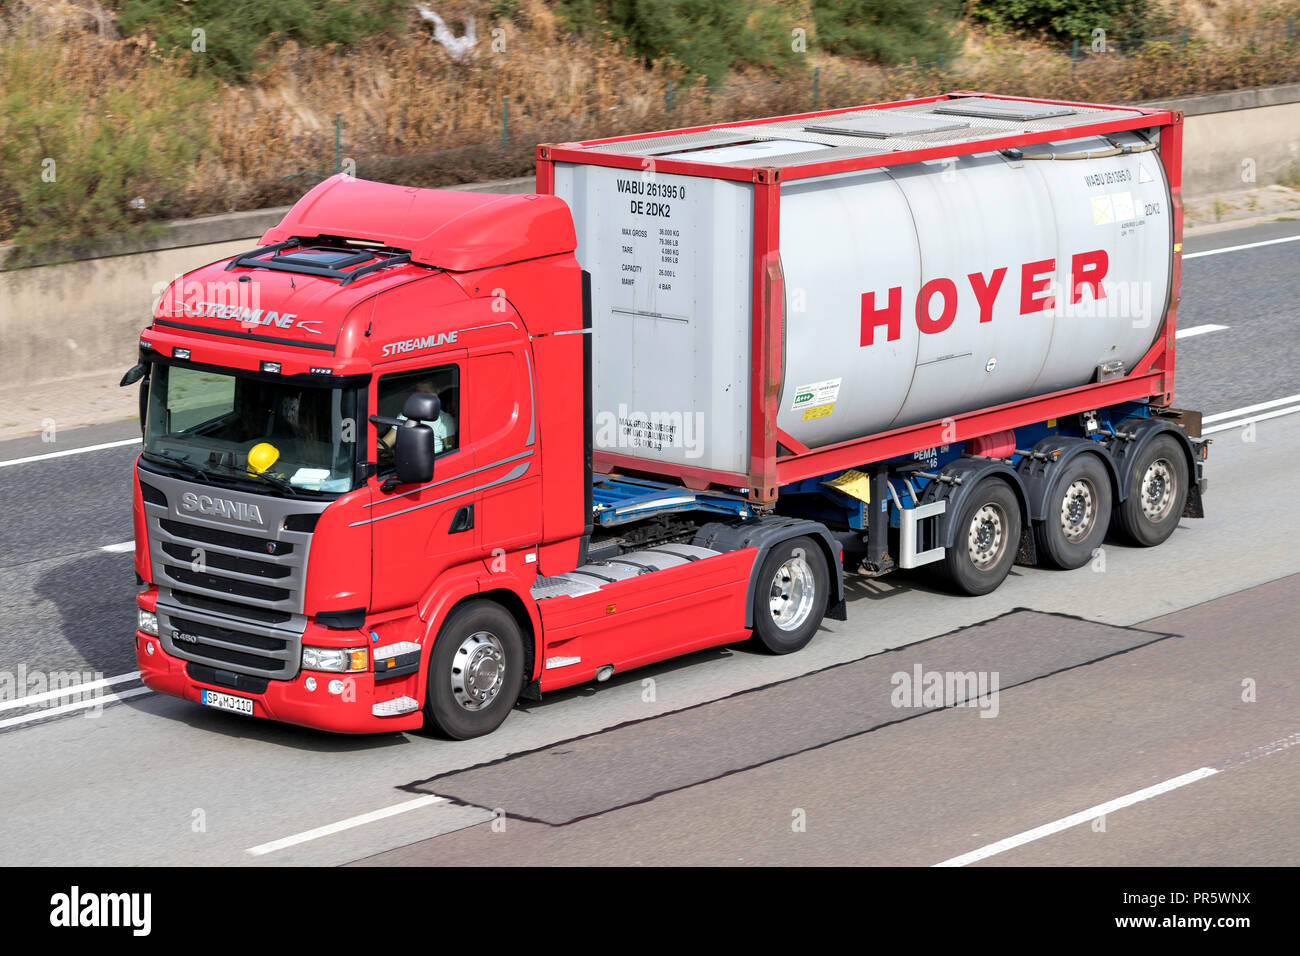 Hoyer truck on motorway. Hoyer is a global market leader for transports of liquid goods by road, rail and sea. - Stock Image